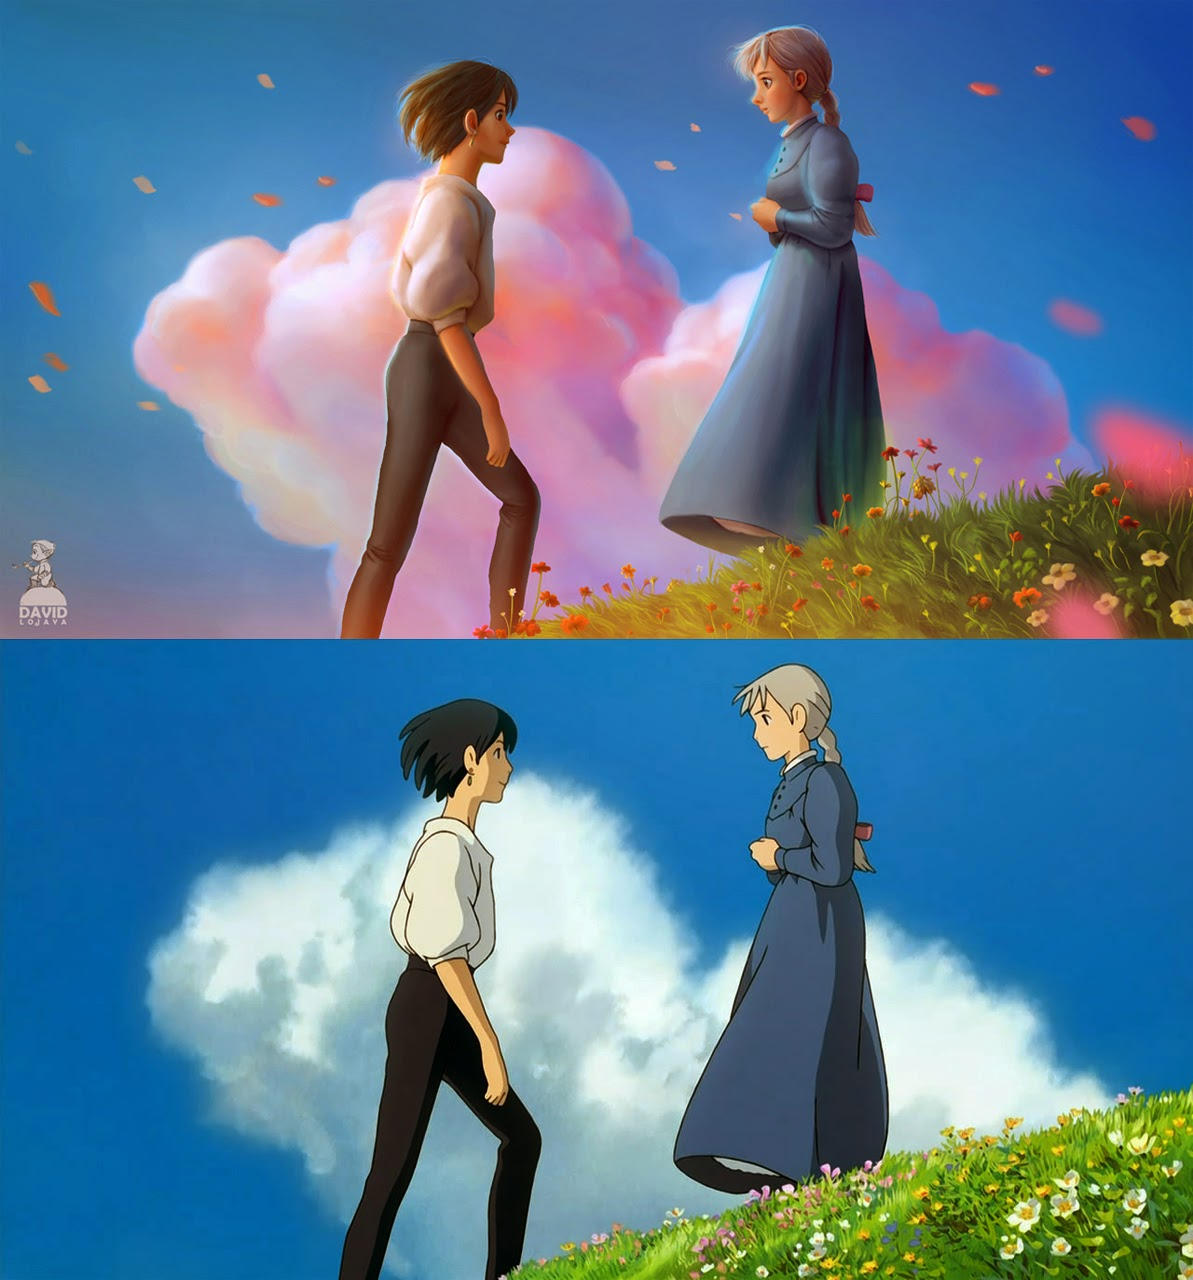 the art of david adhinarya lojaya howl s moving castle breakdown